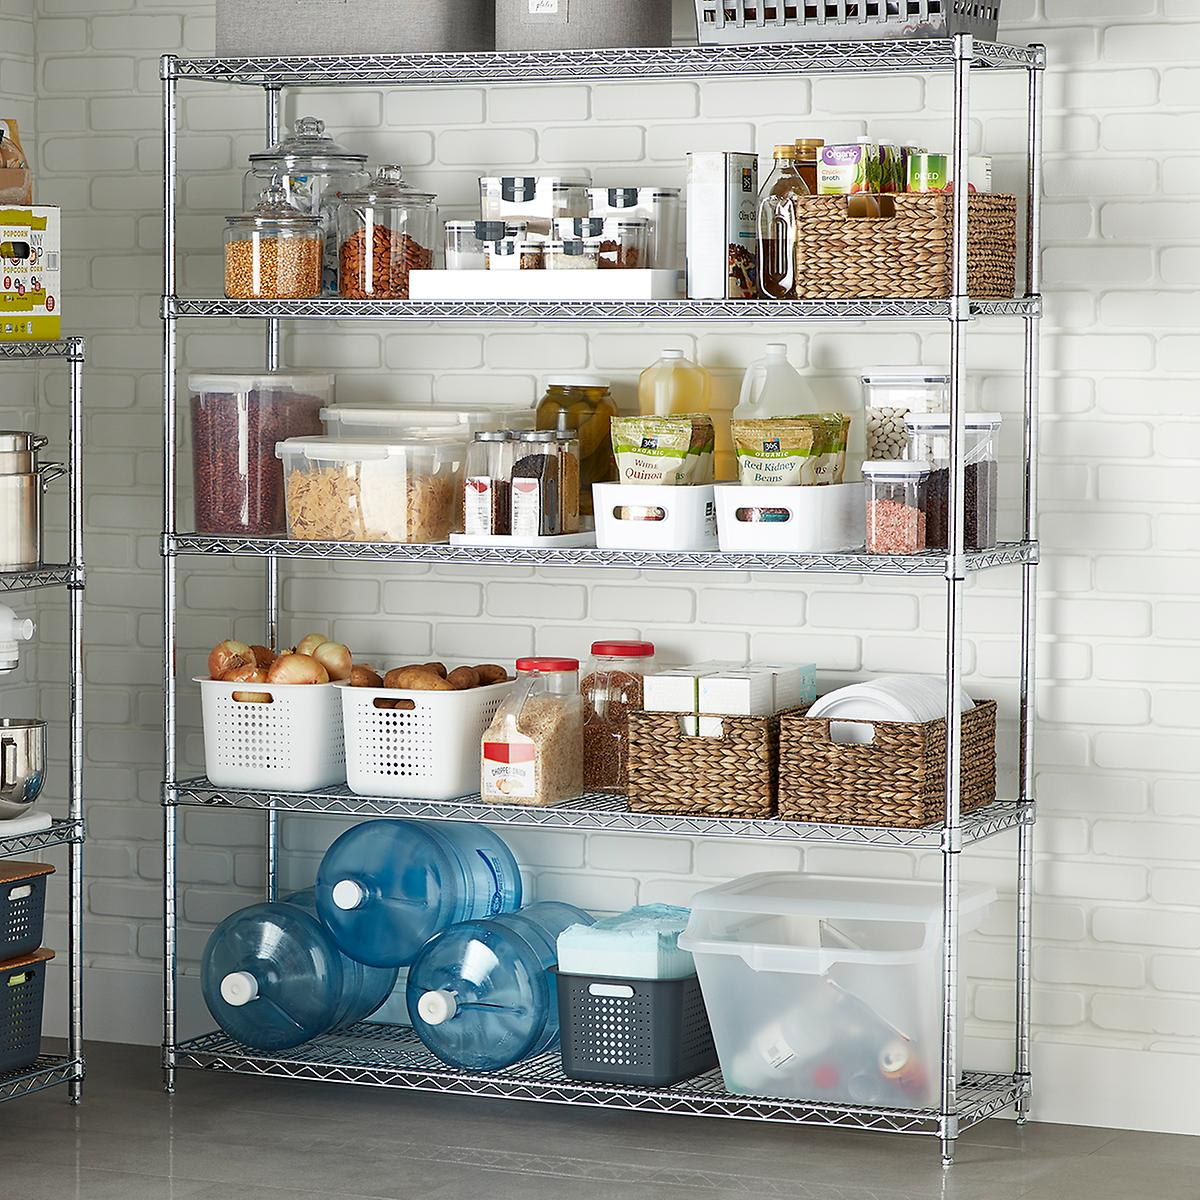 Those Wire Shelves in Your Kitchen Don't Have to Look Terrible